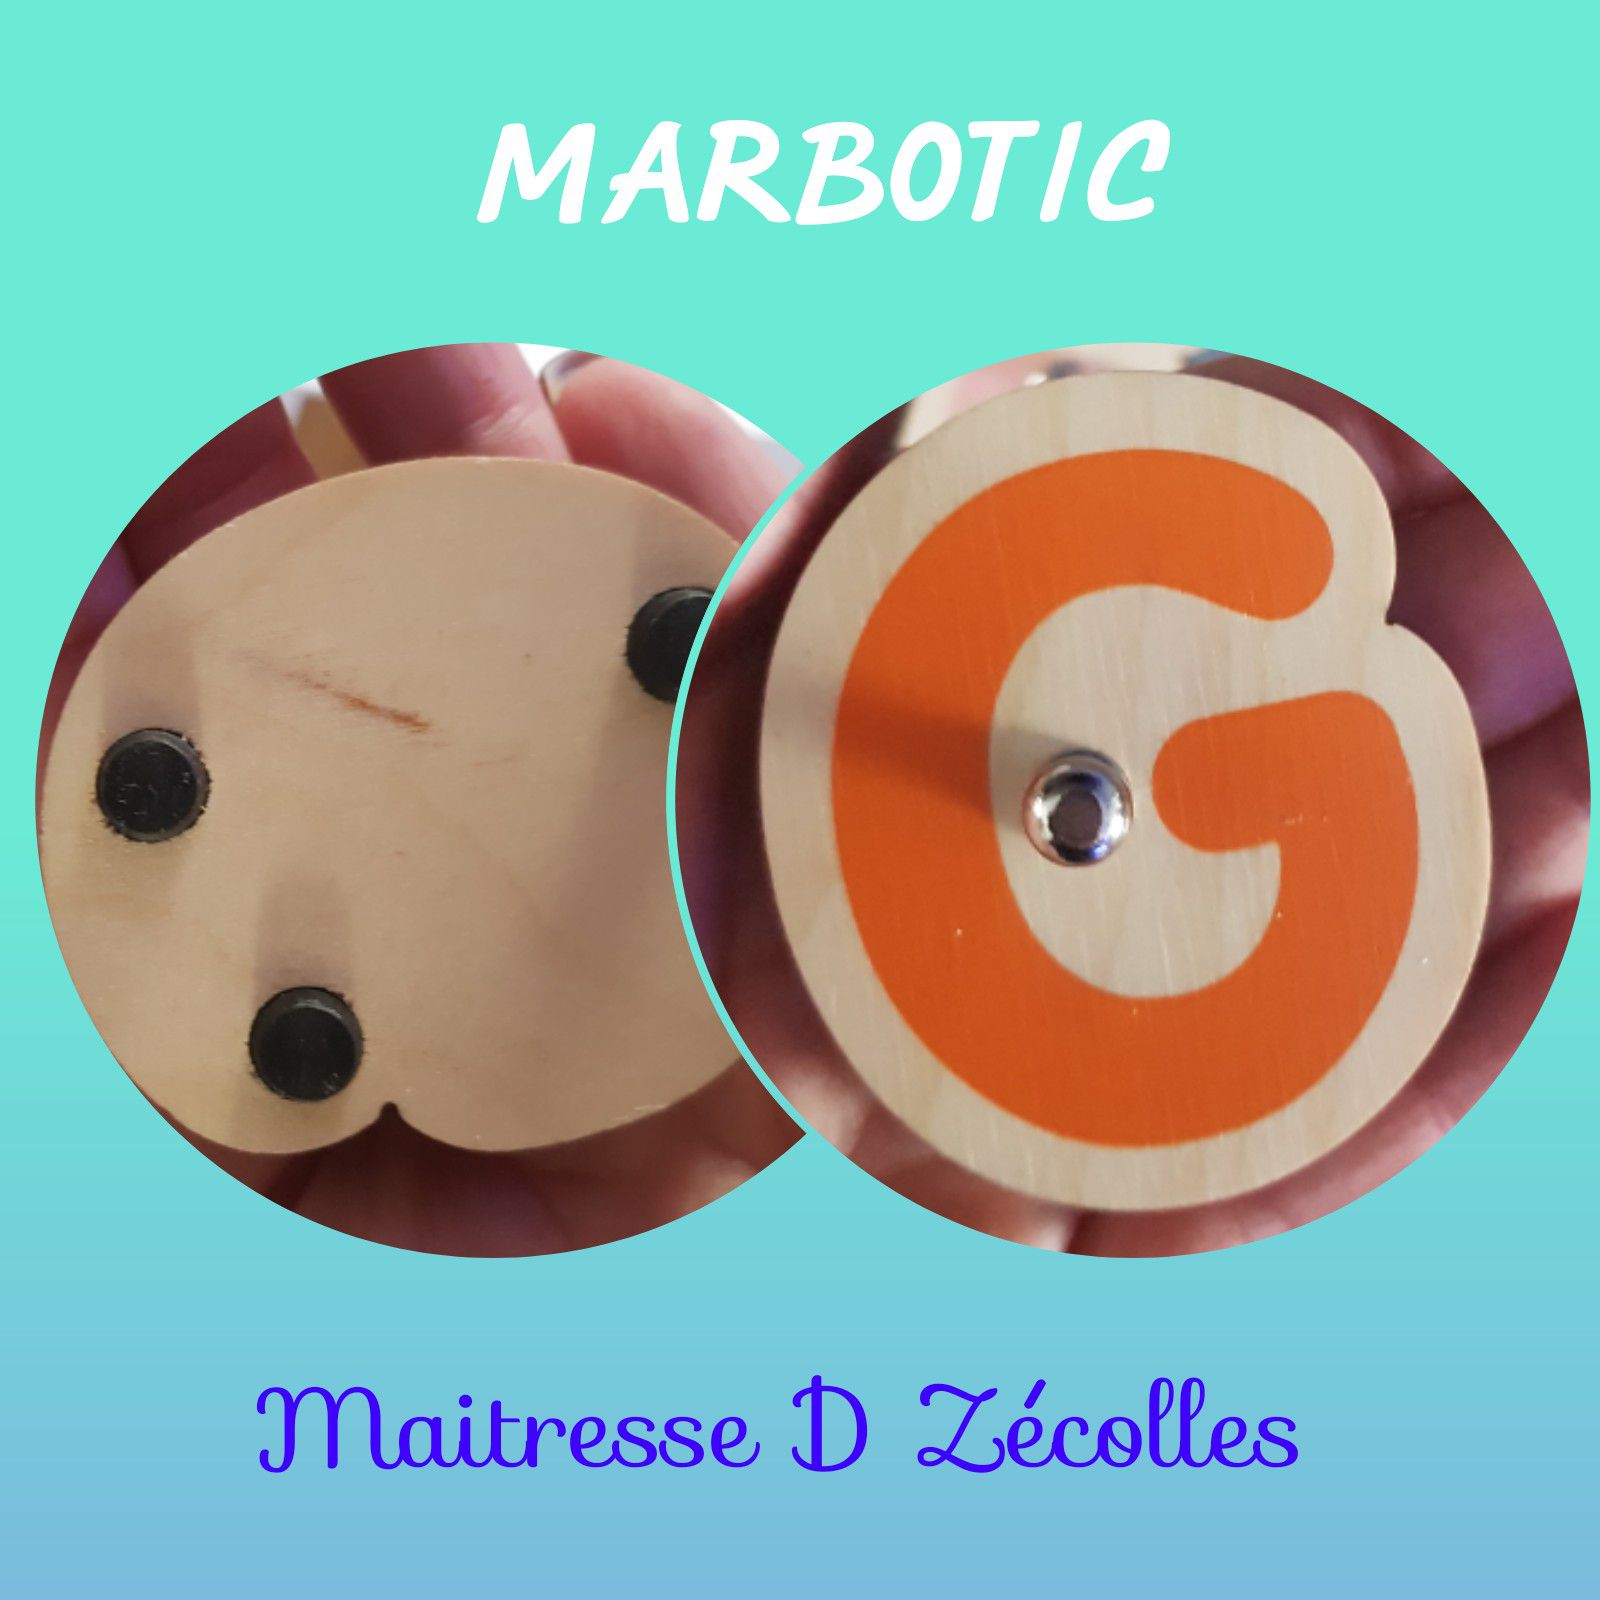 Lettres capitales MARBOTIC